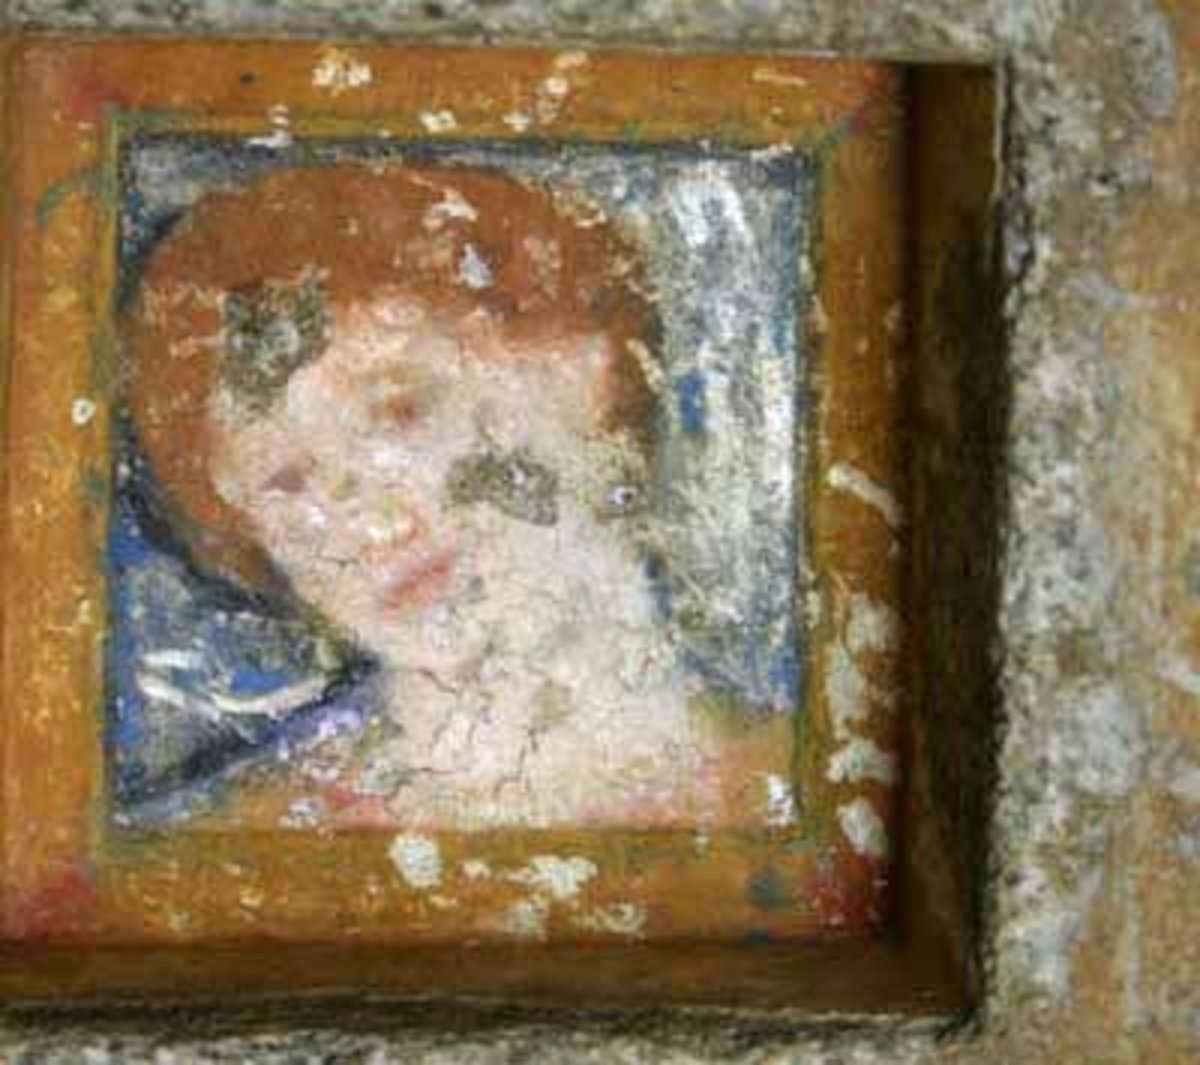 In an Ostrusha tomb near Kazanlik is coffer painting of a Thracian woman